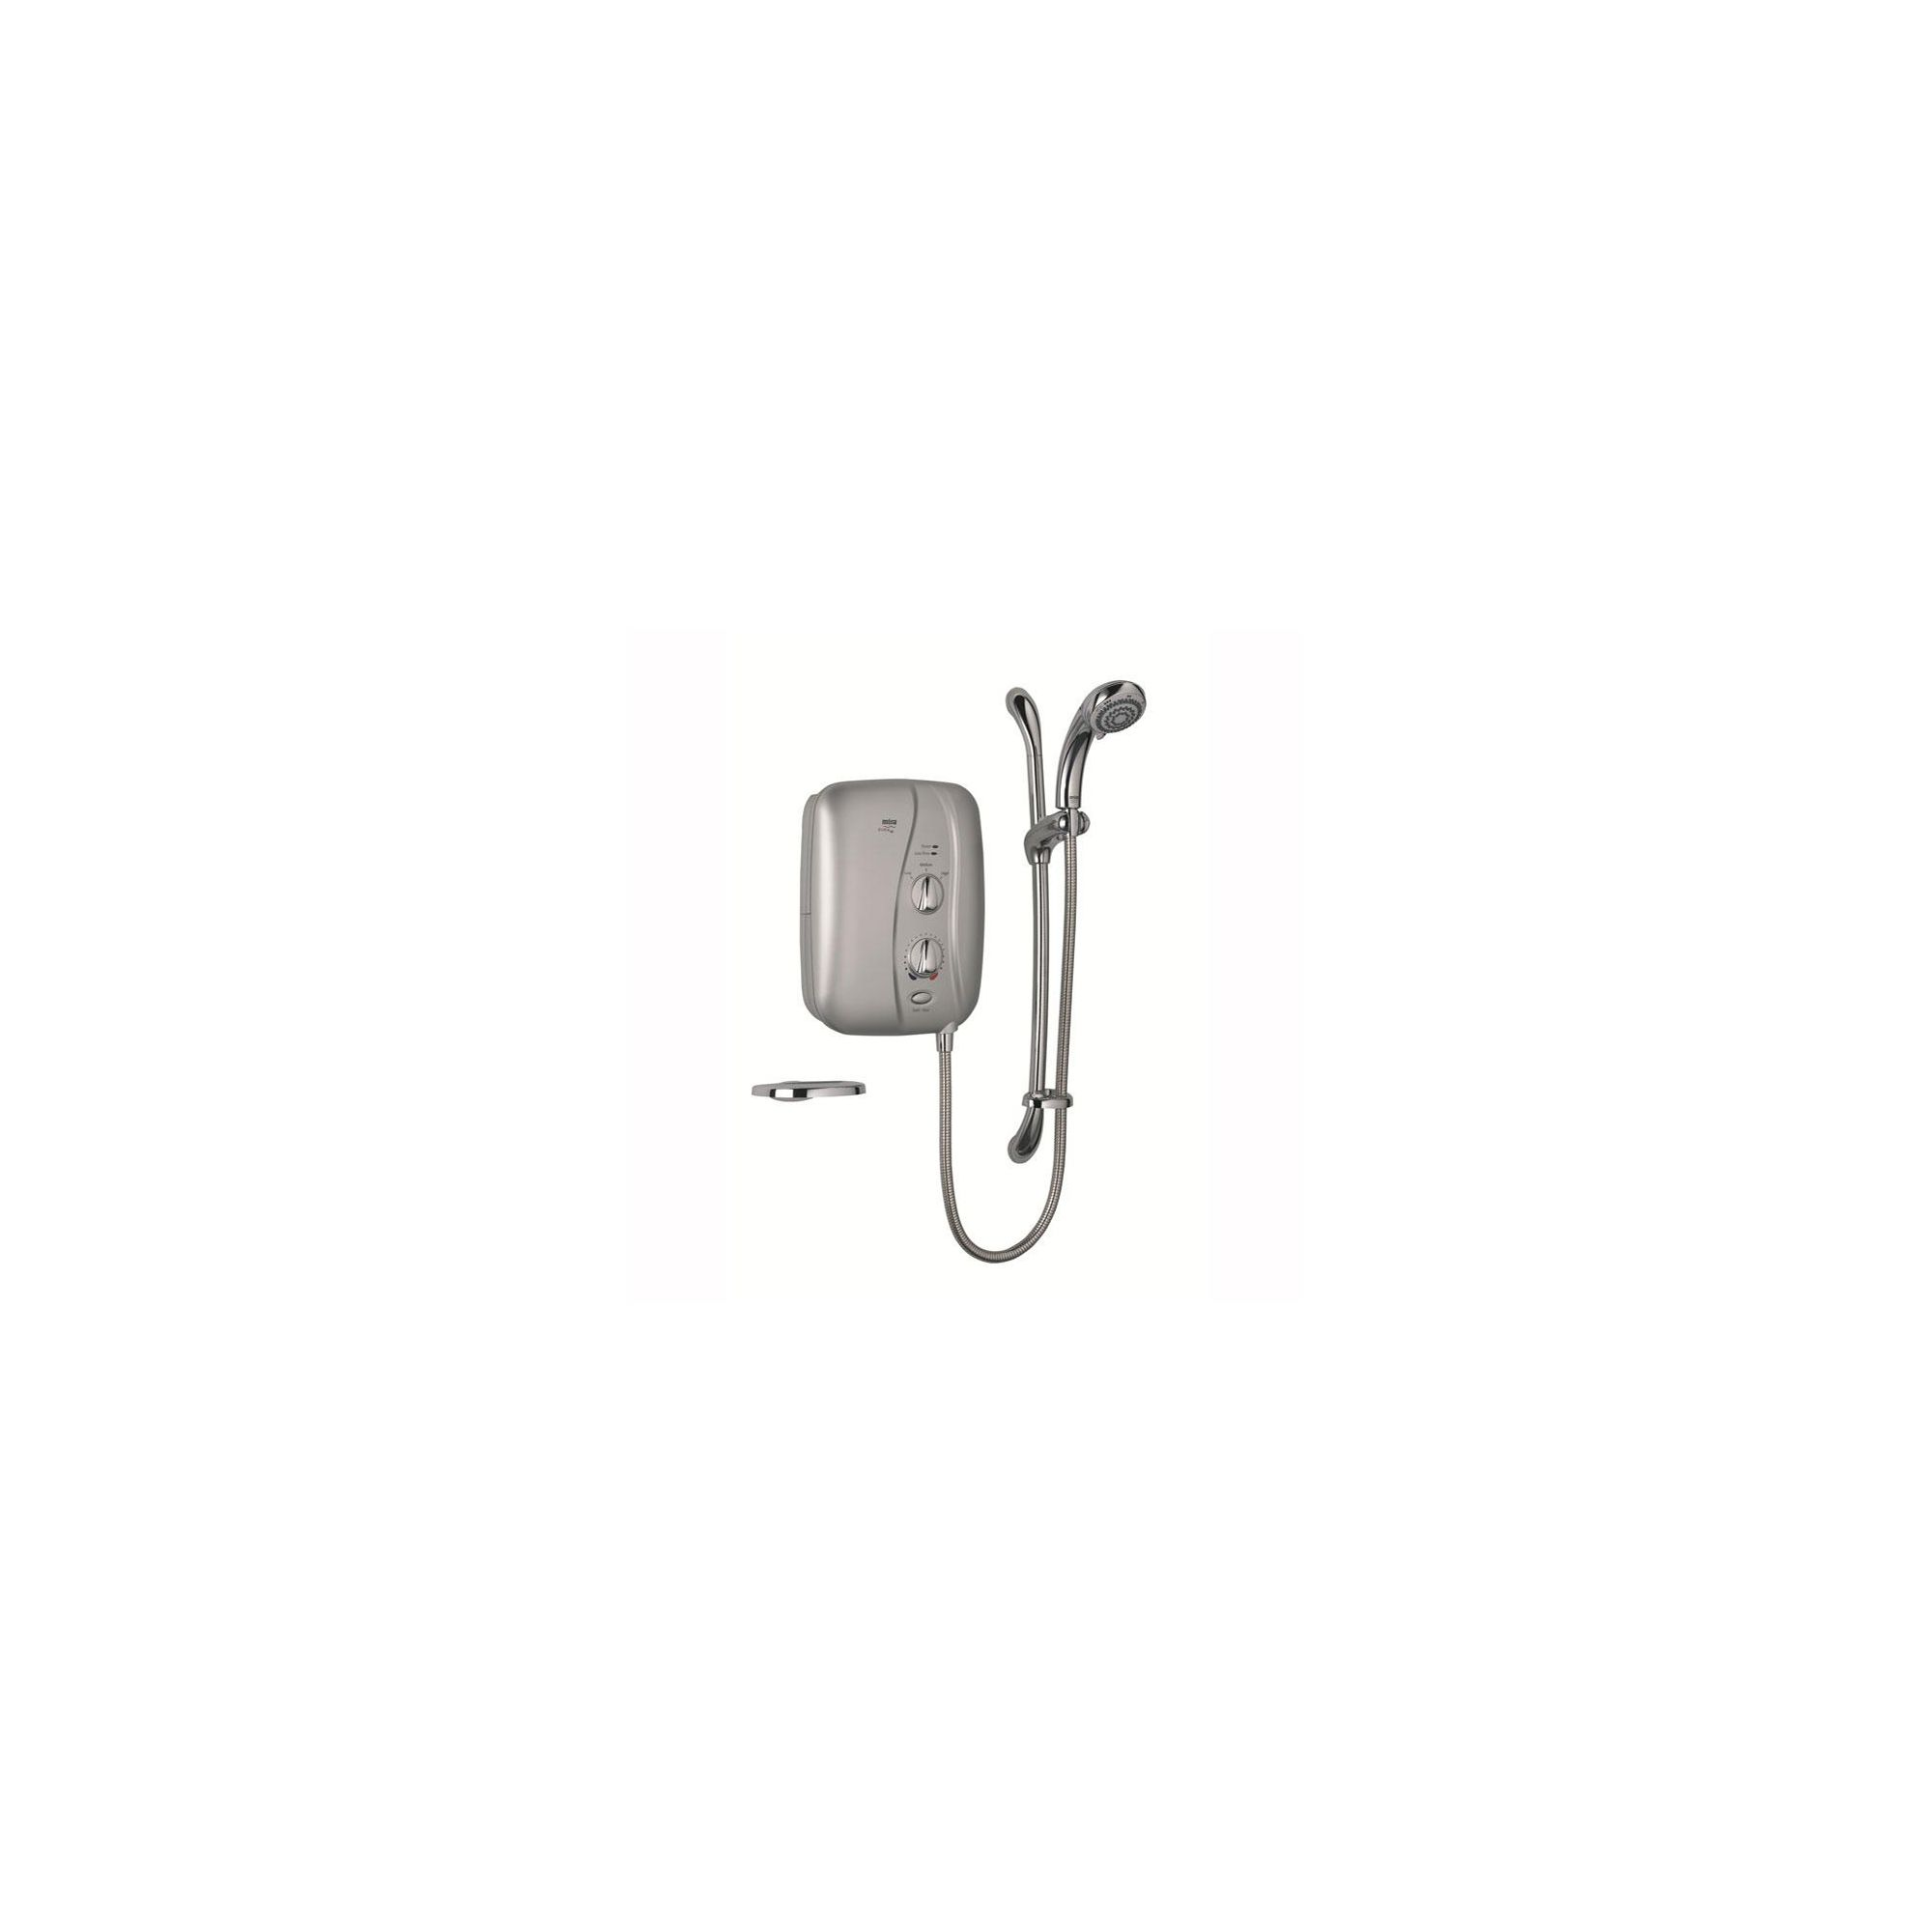 Mira Elite ST 9.8 kW Electric Shower with Sensi-Flo, Satin Chrome at Tesco Direct